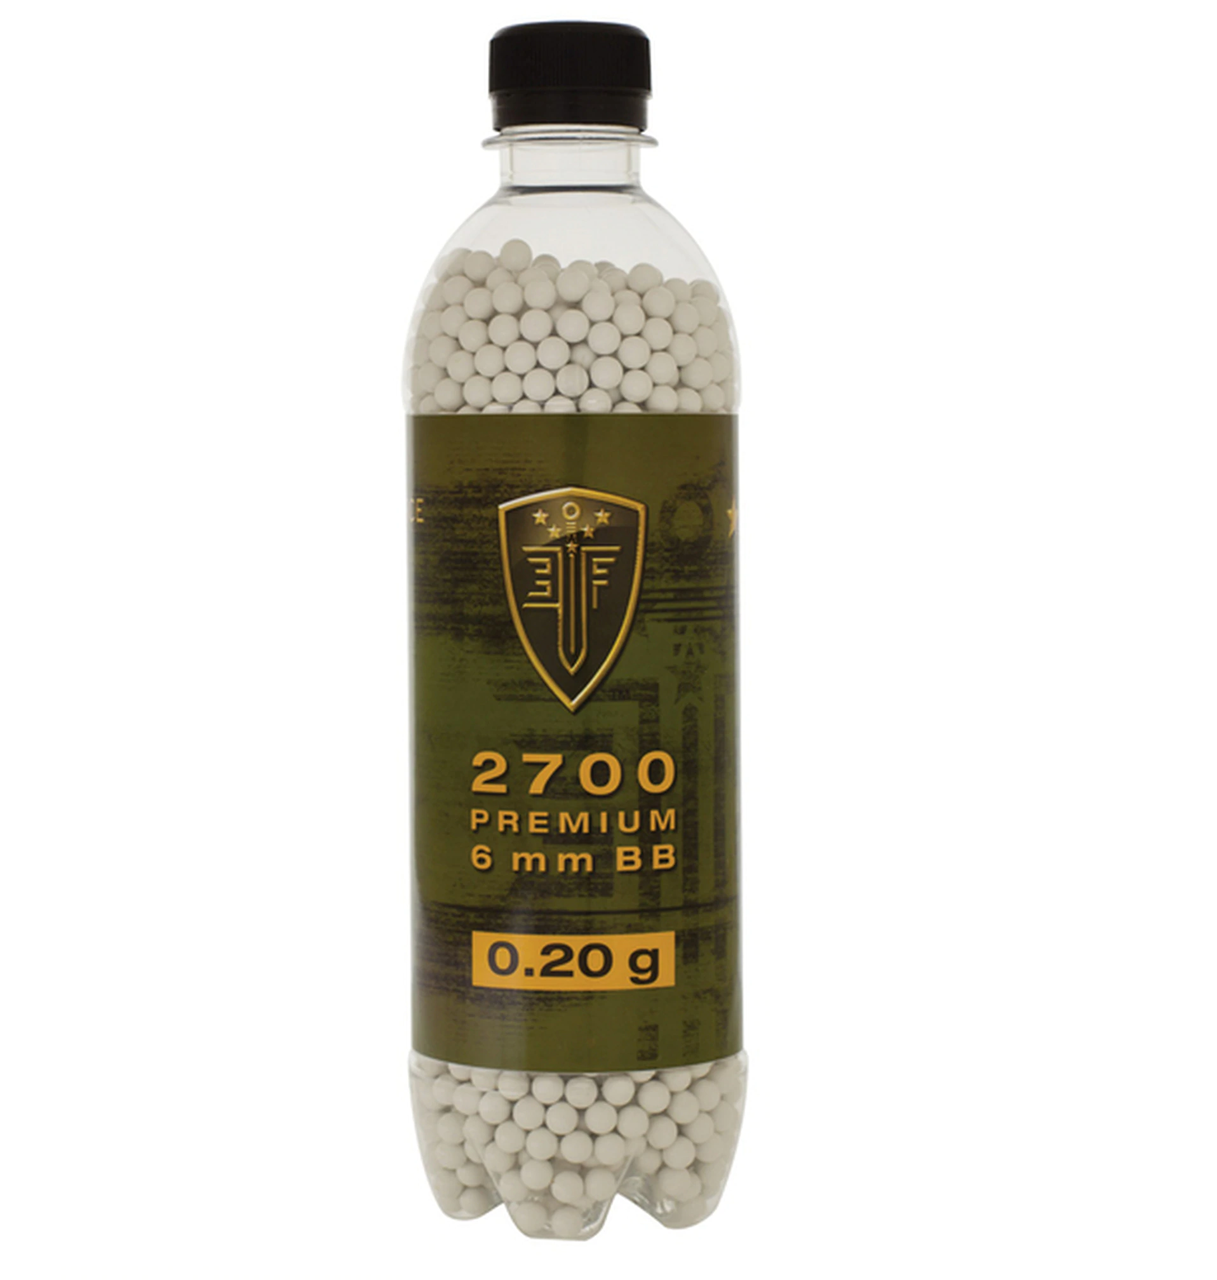 Non-biodegradable Airsoft BBs